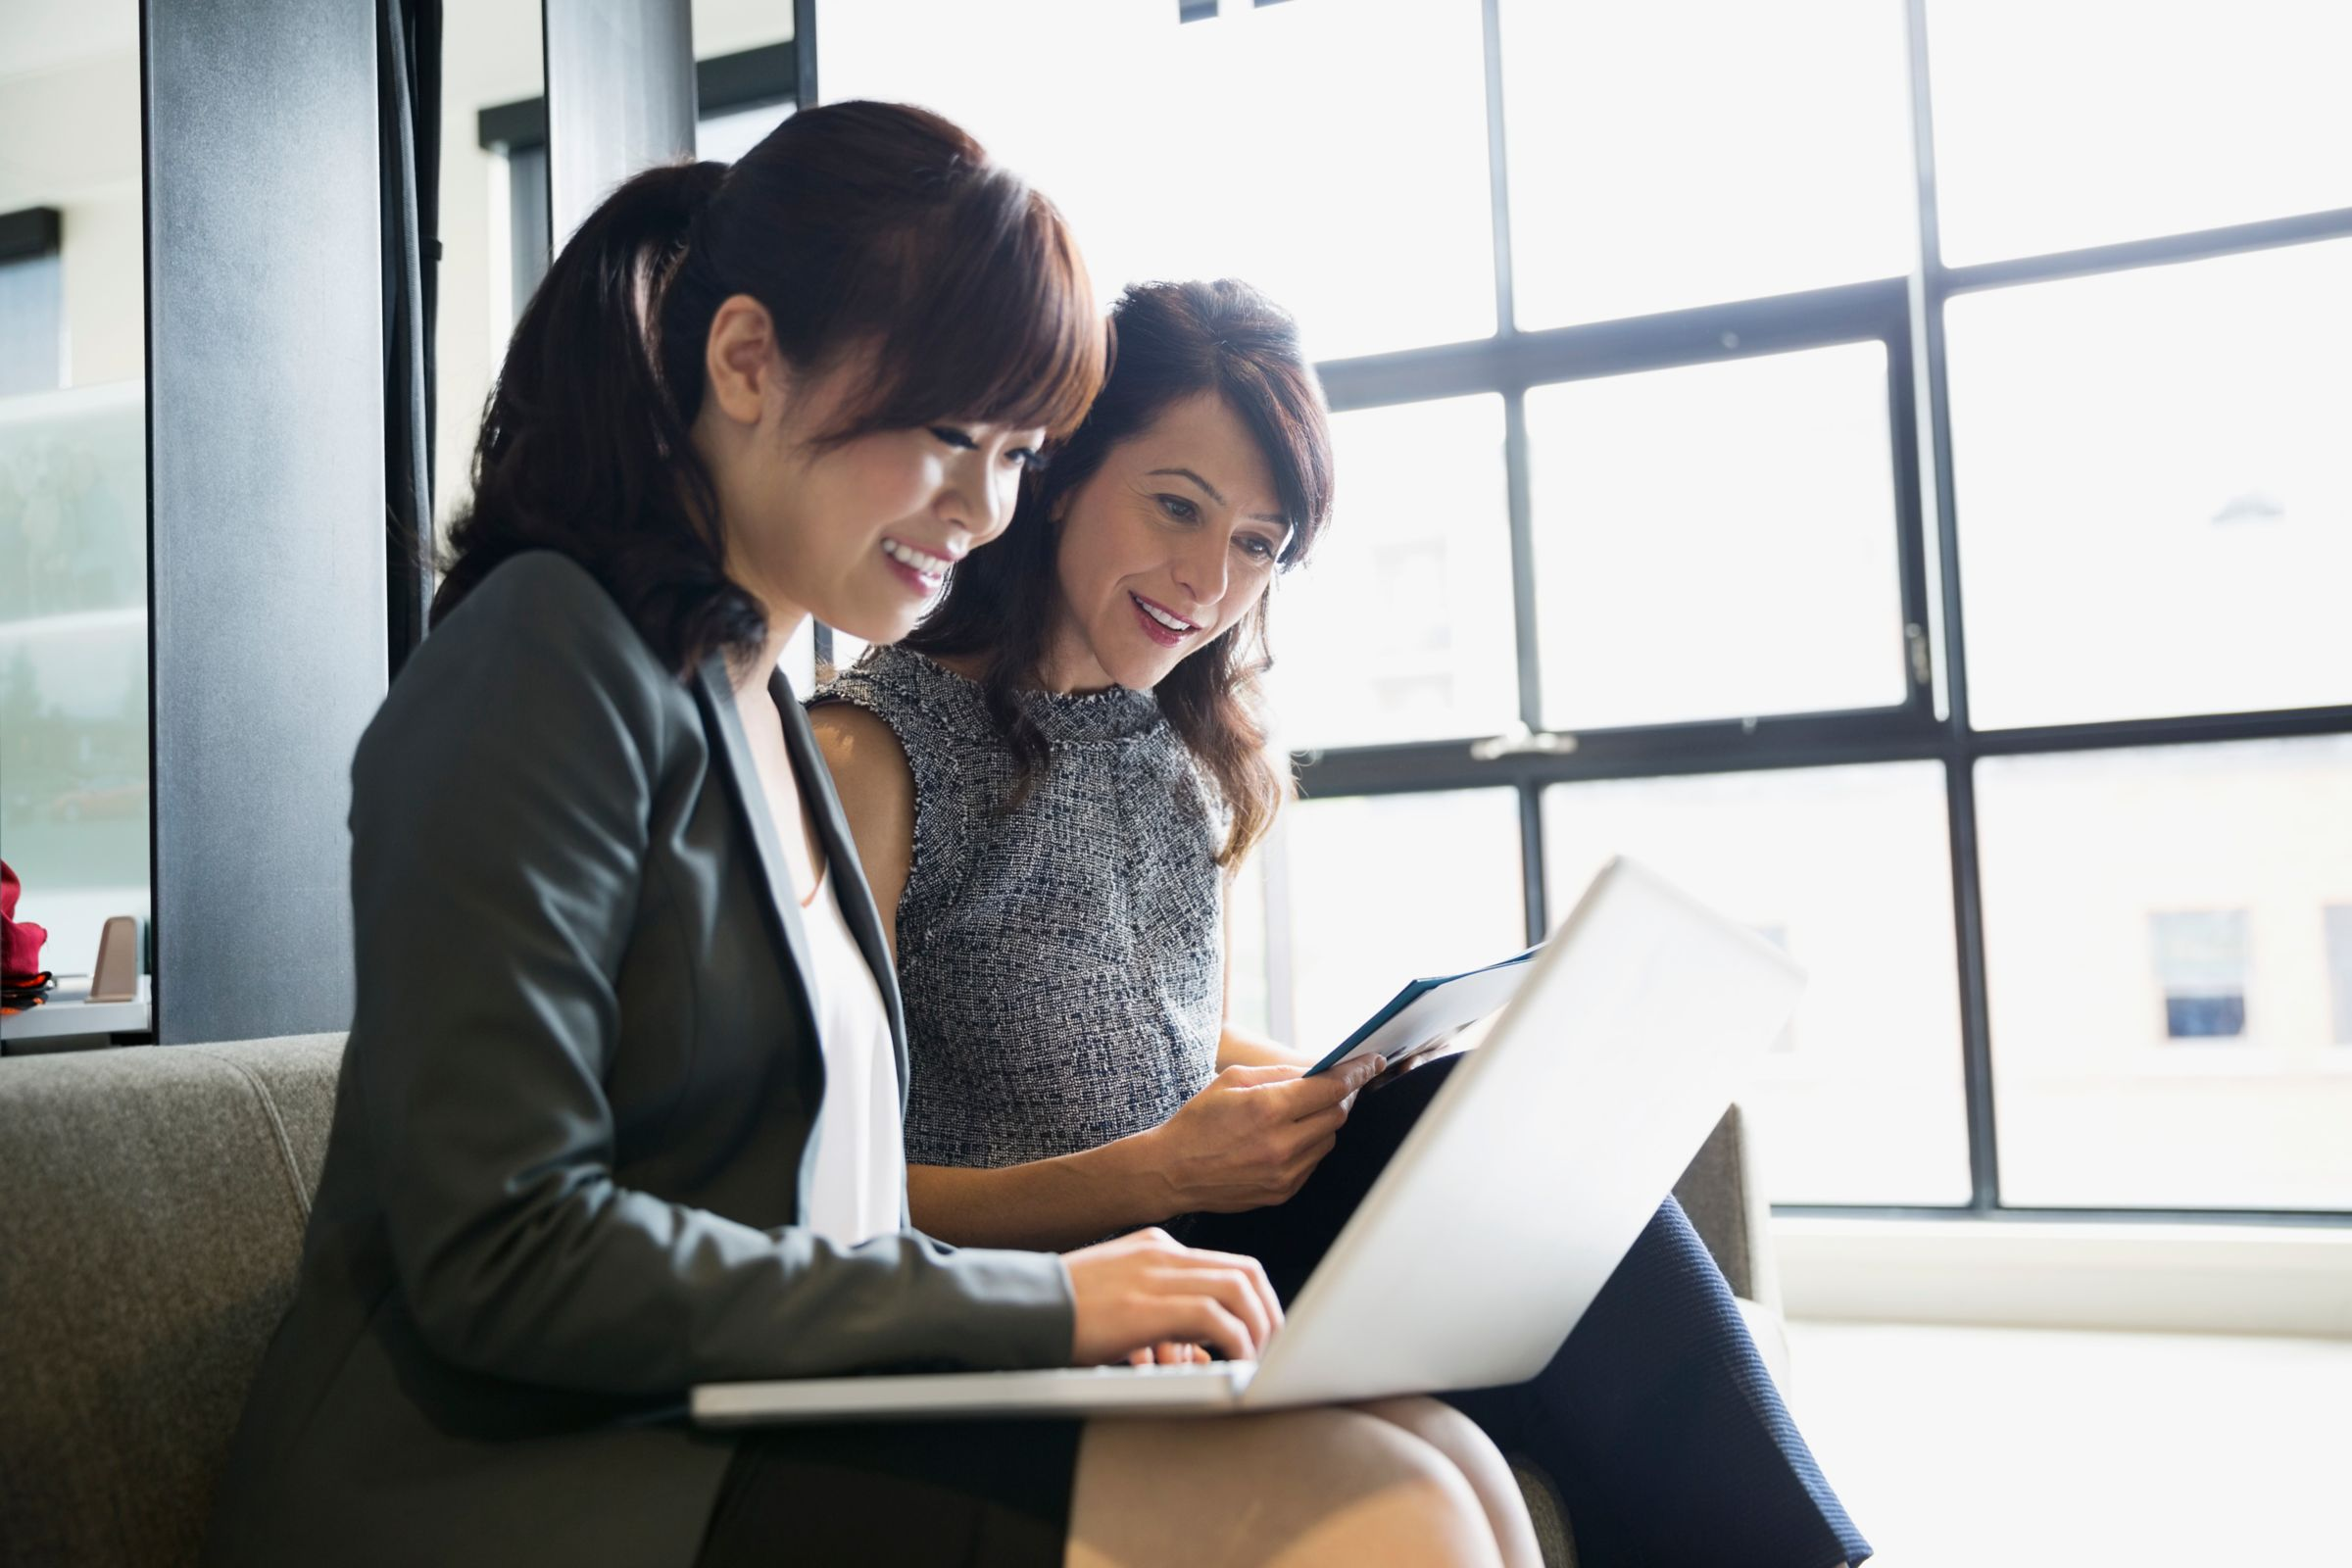 2 women looking at a computer